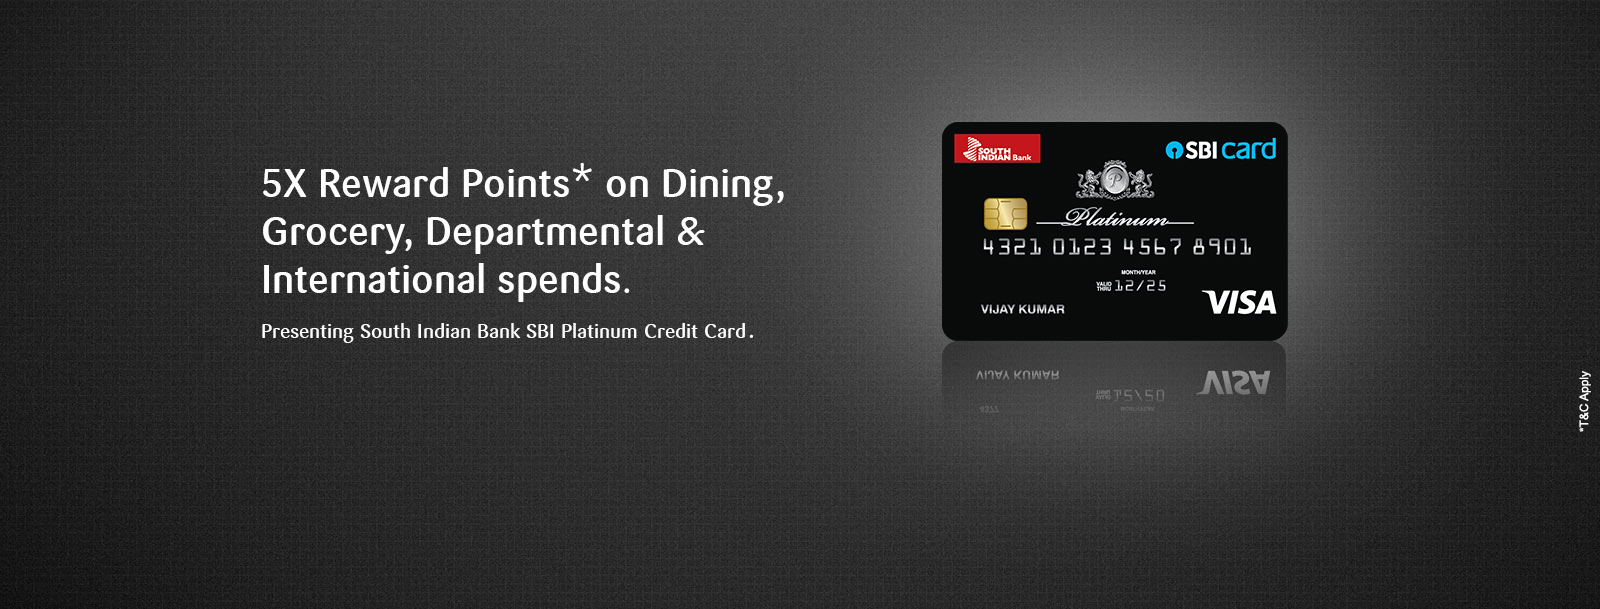 South Indian Bank Sbi Platinum Credit Card